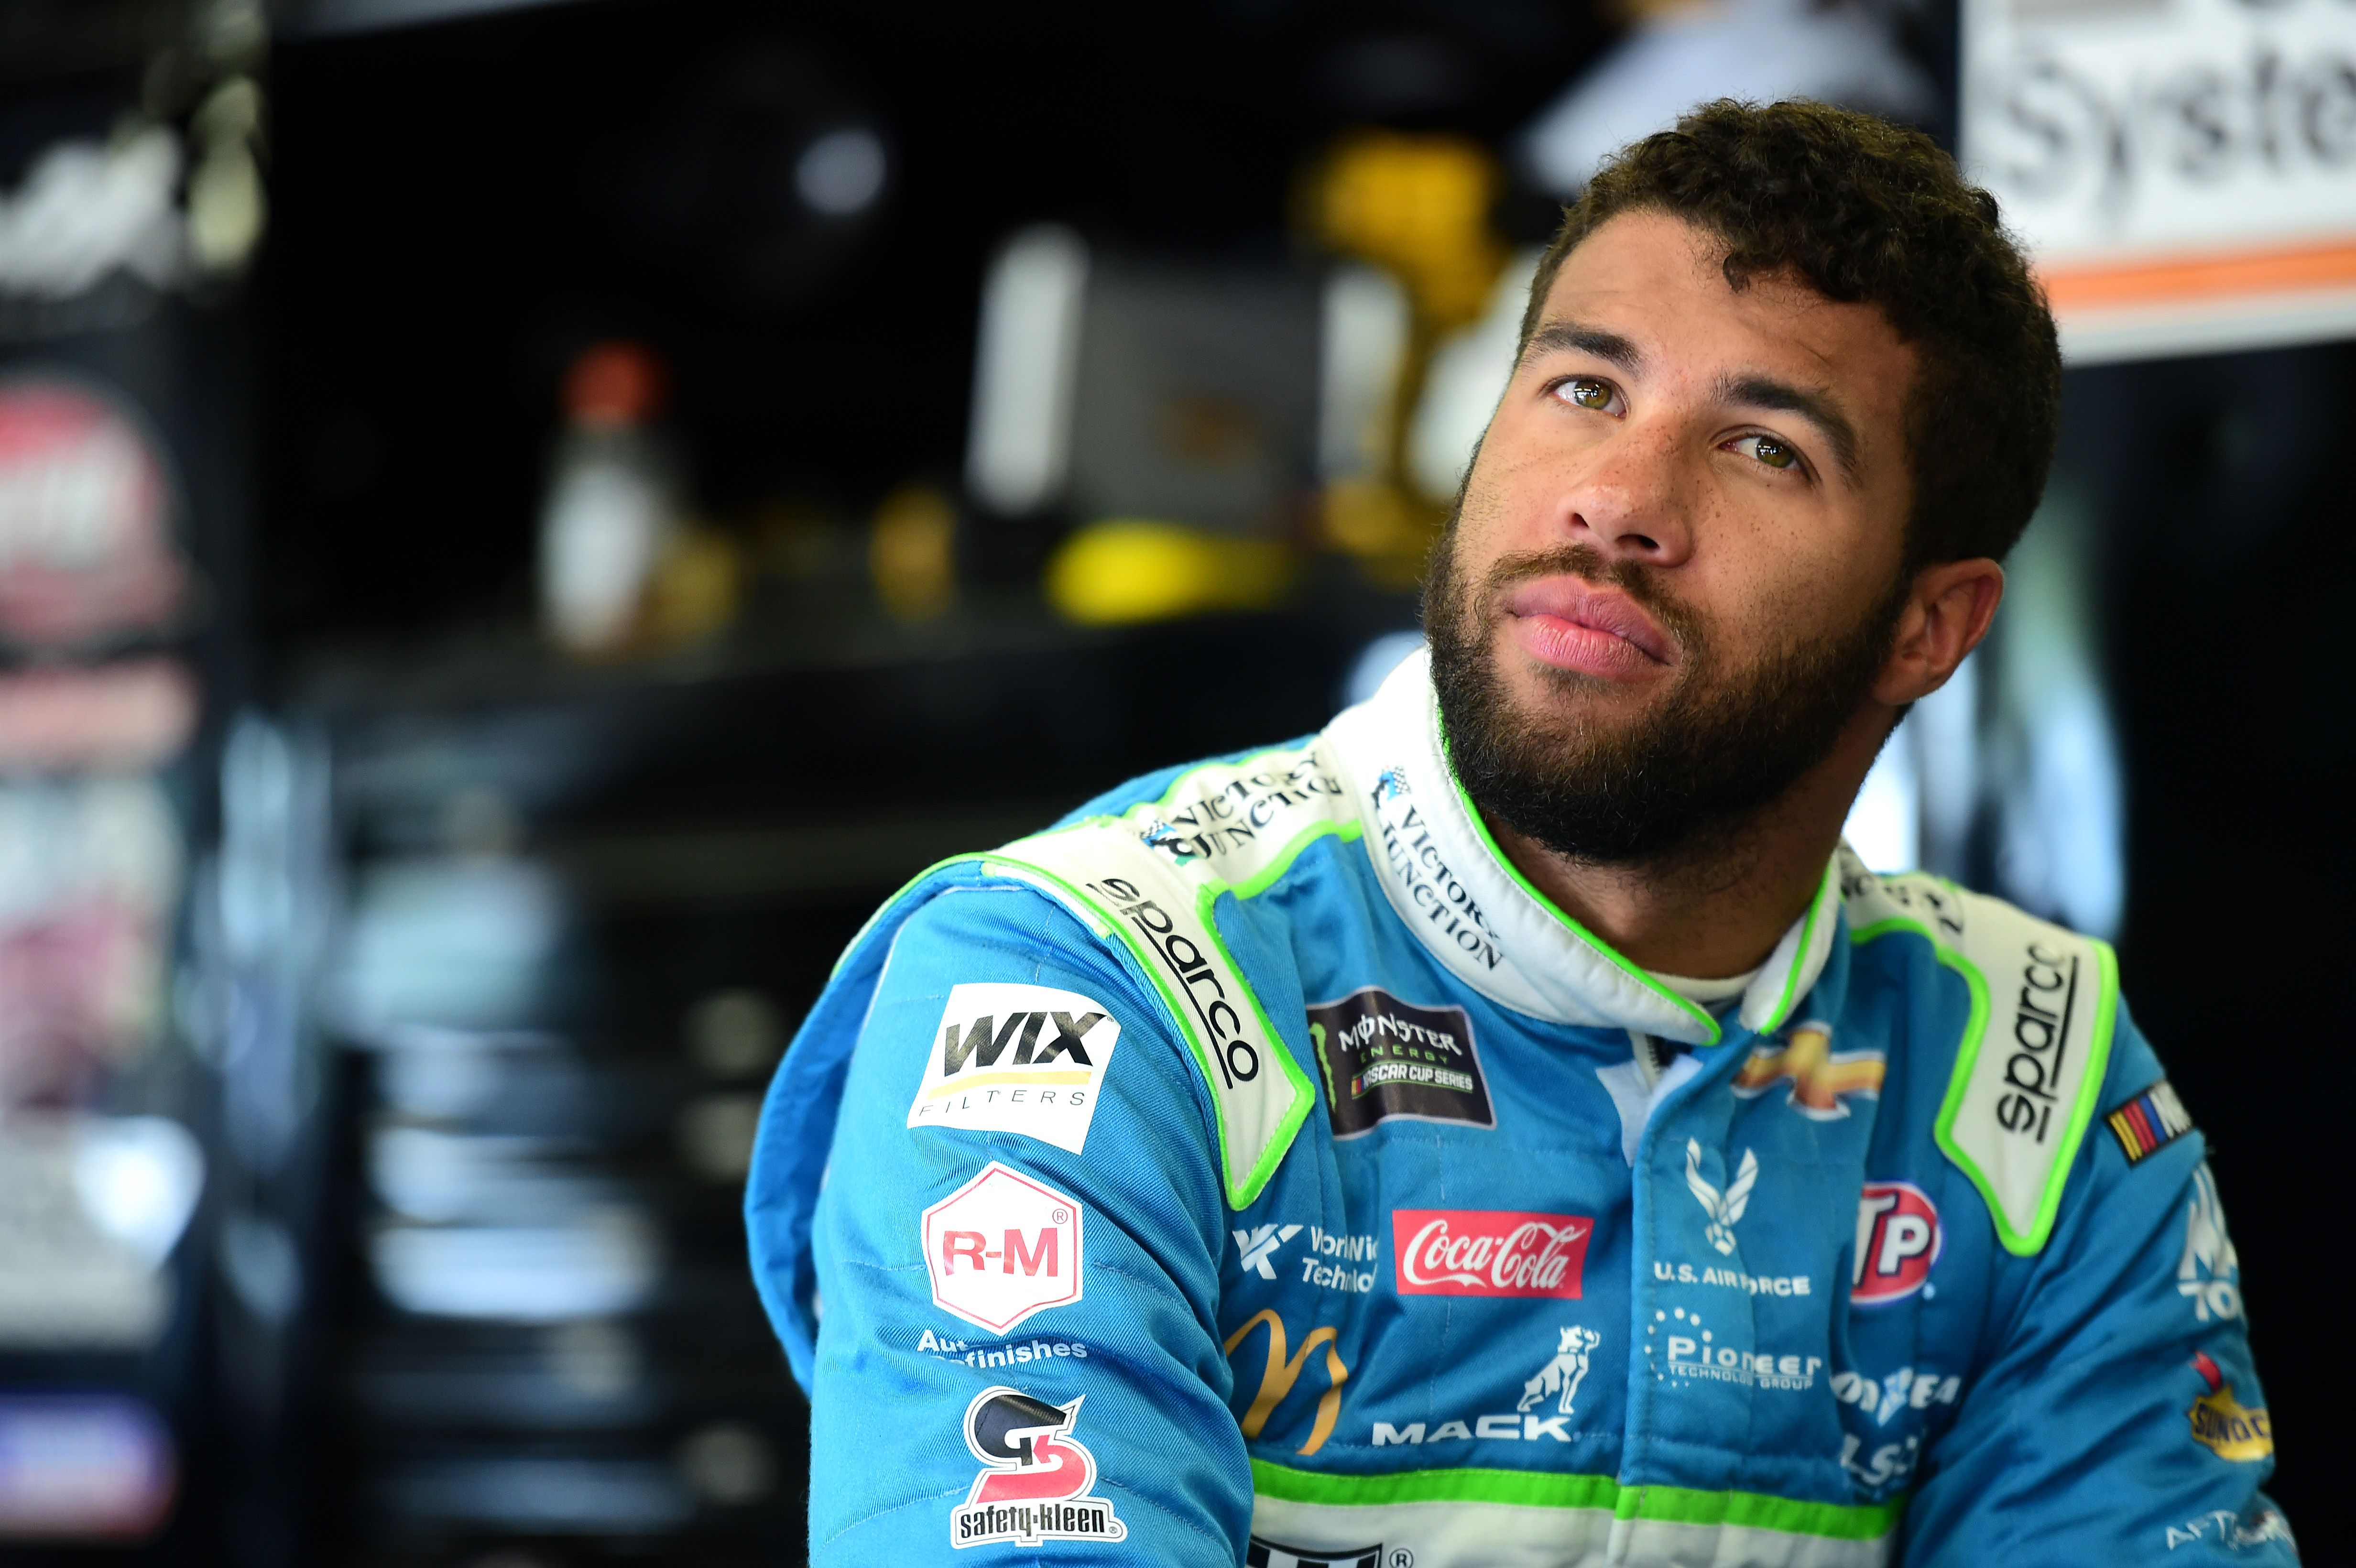 Bubba Wallace during practice for the Monster Energy NASCAR Cup Series Foxwoods Resort Casino 301 at New Hampshire Motor Speedway on July 20, 2019 in Loudon, New Hampshire | Photo: Getty Images